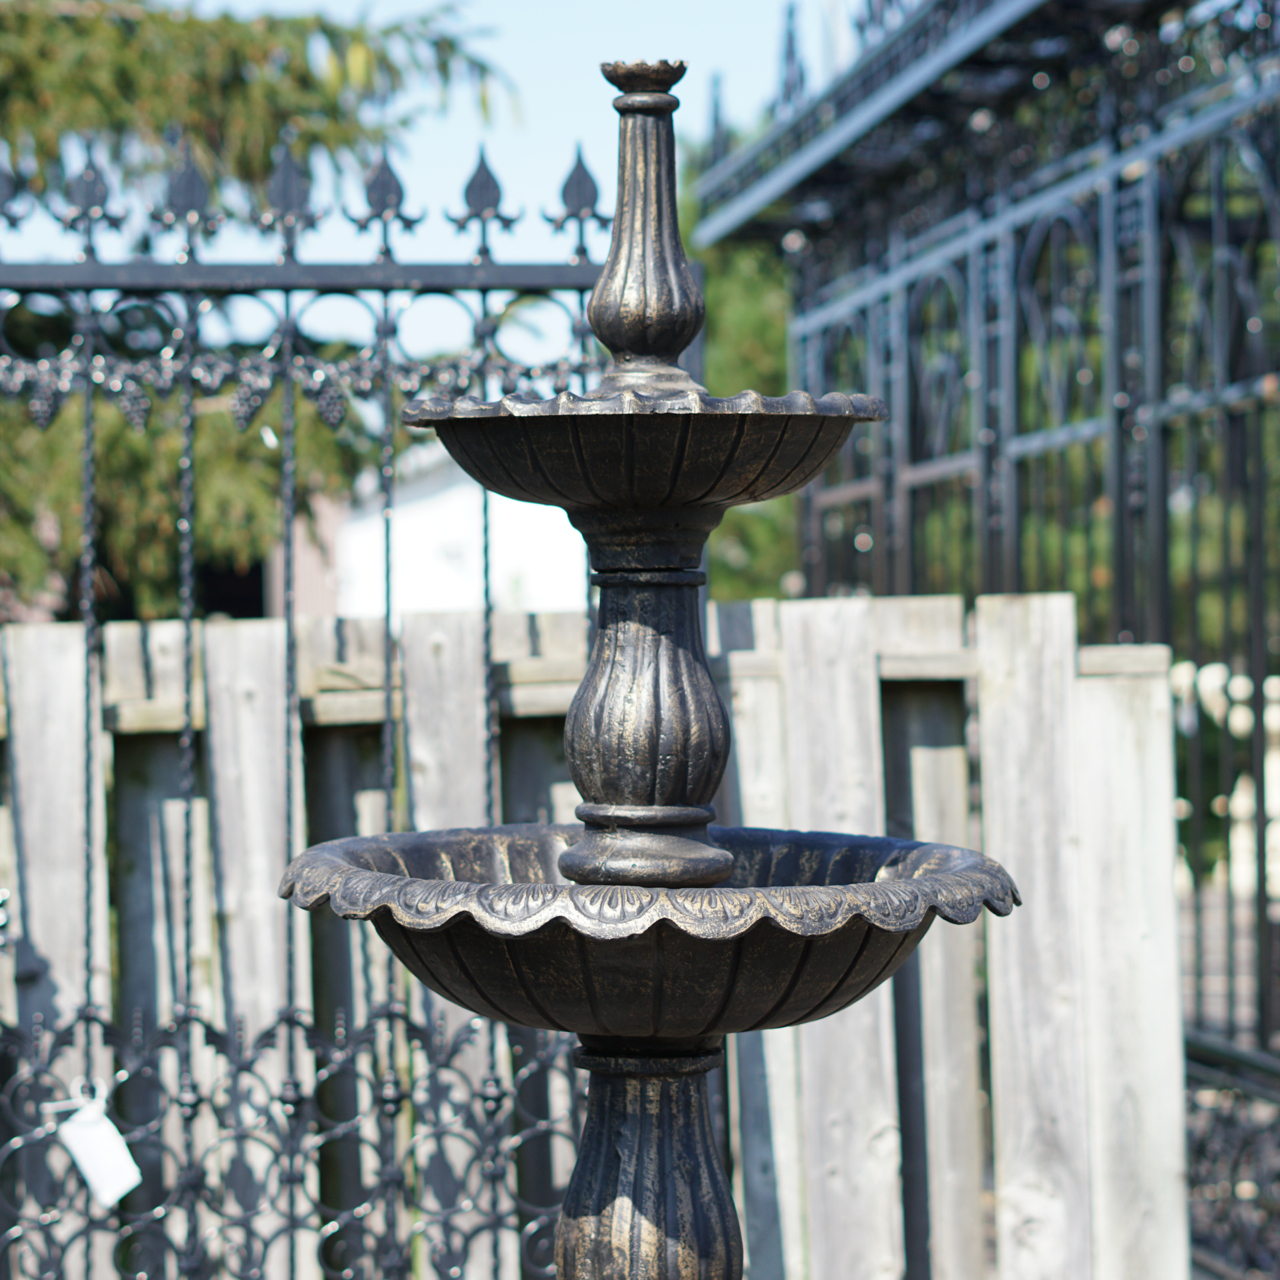 Three Tier Cast Iron Garden Fountain IronGate Garden